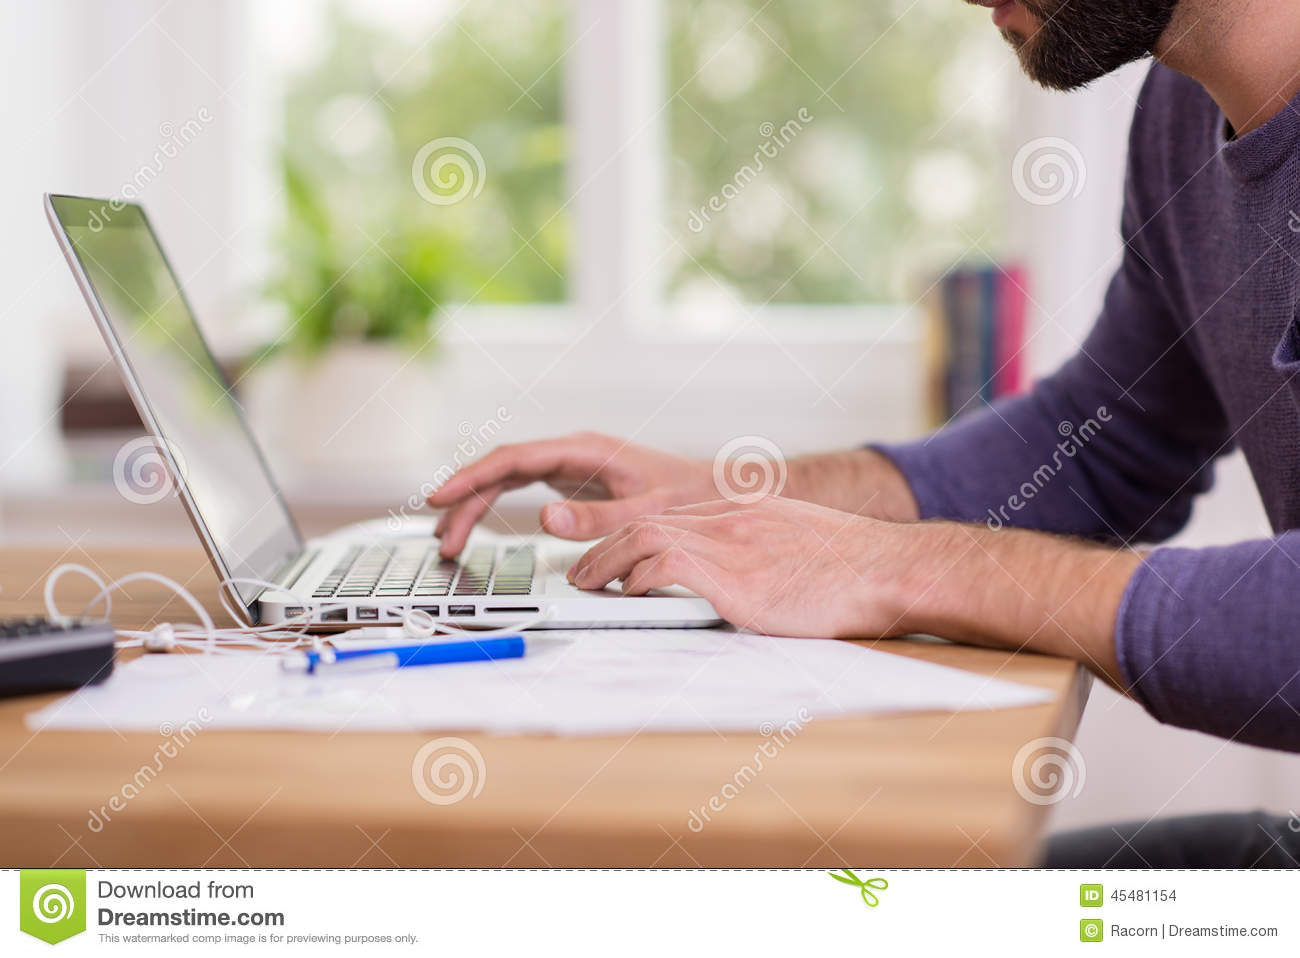 Download Man Working From Home On A Laptop Computer Stock Photo - Image of lifestyle, cropped: 45481154